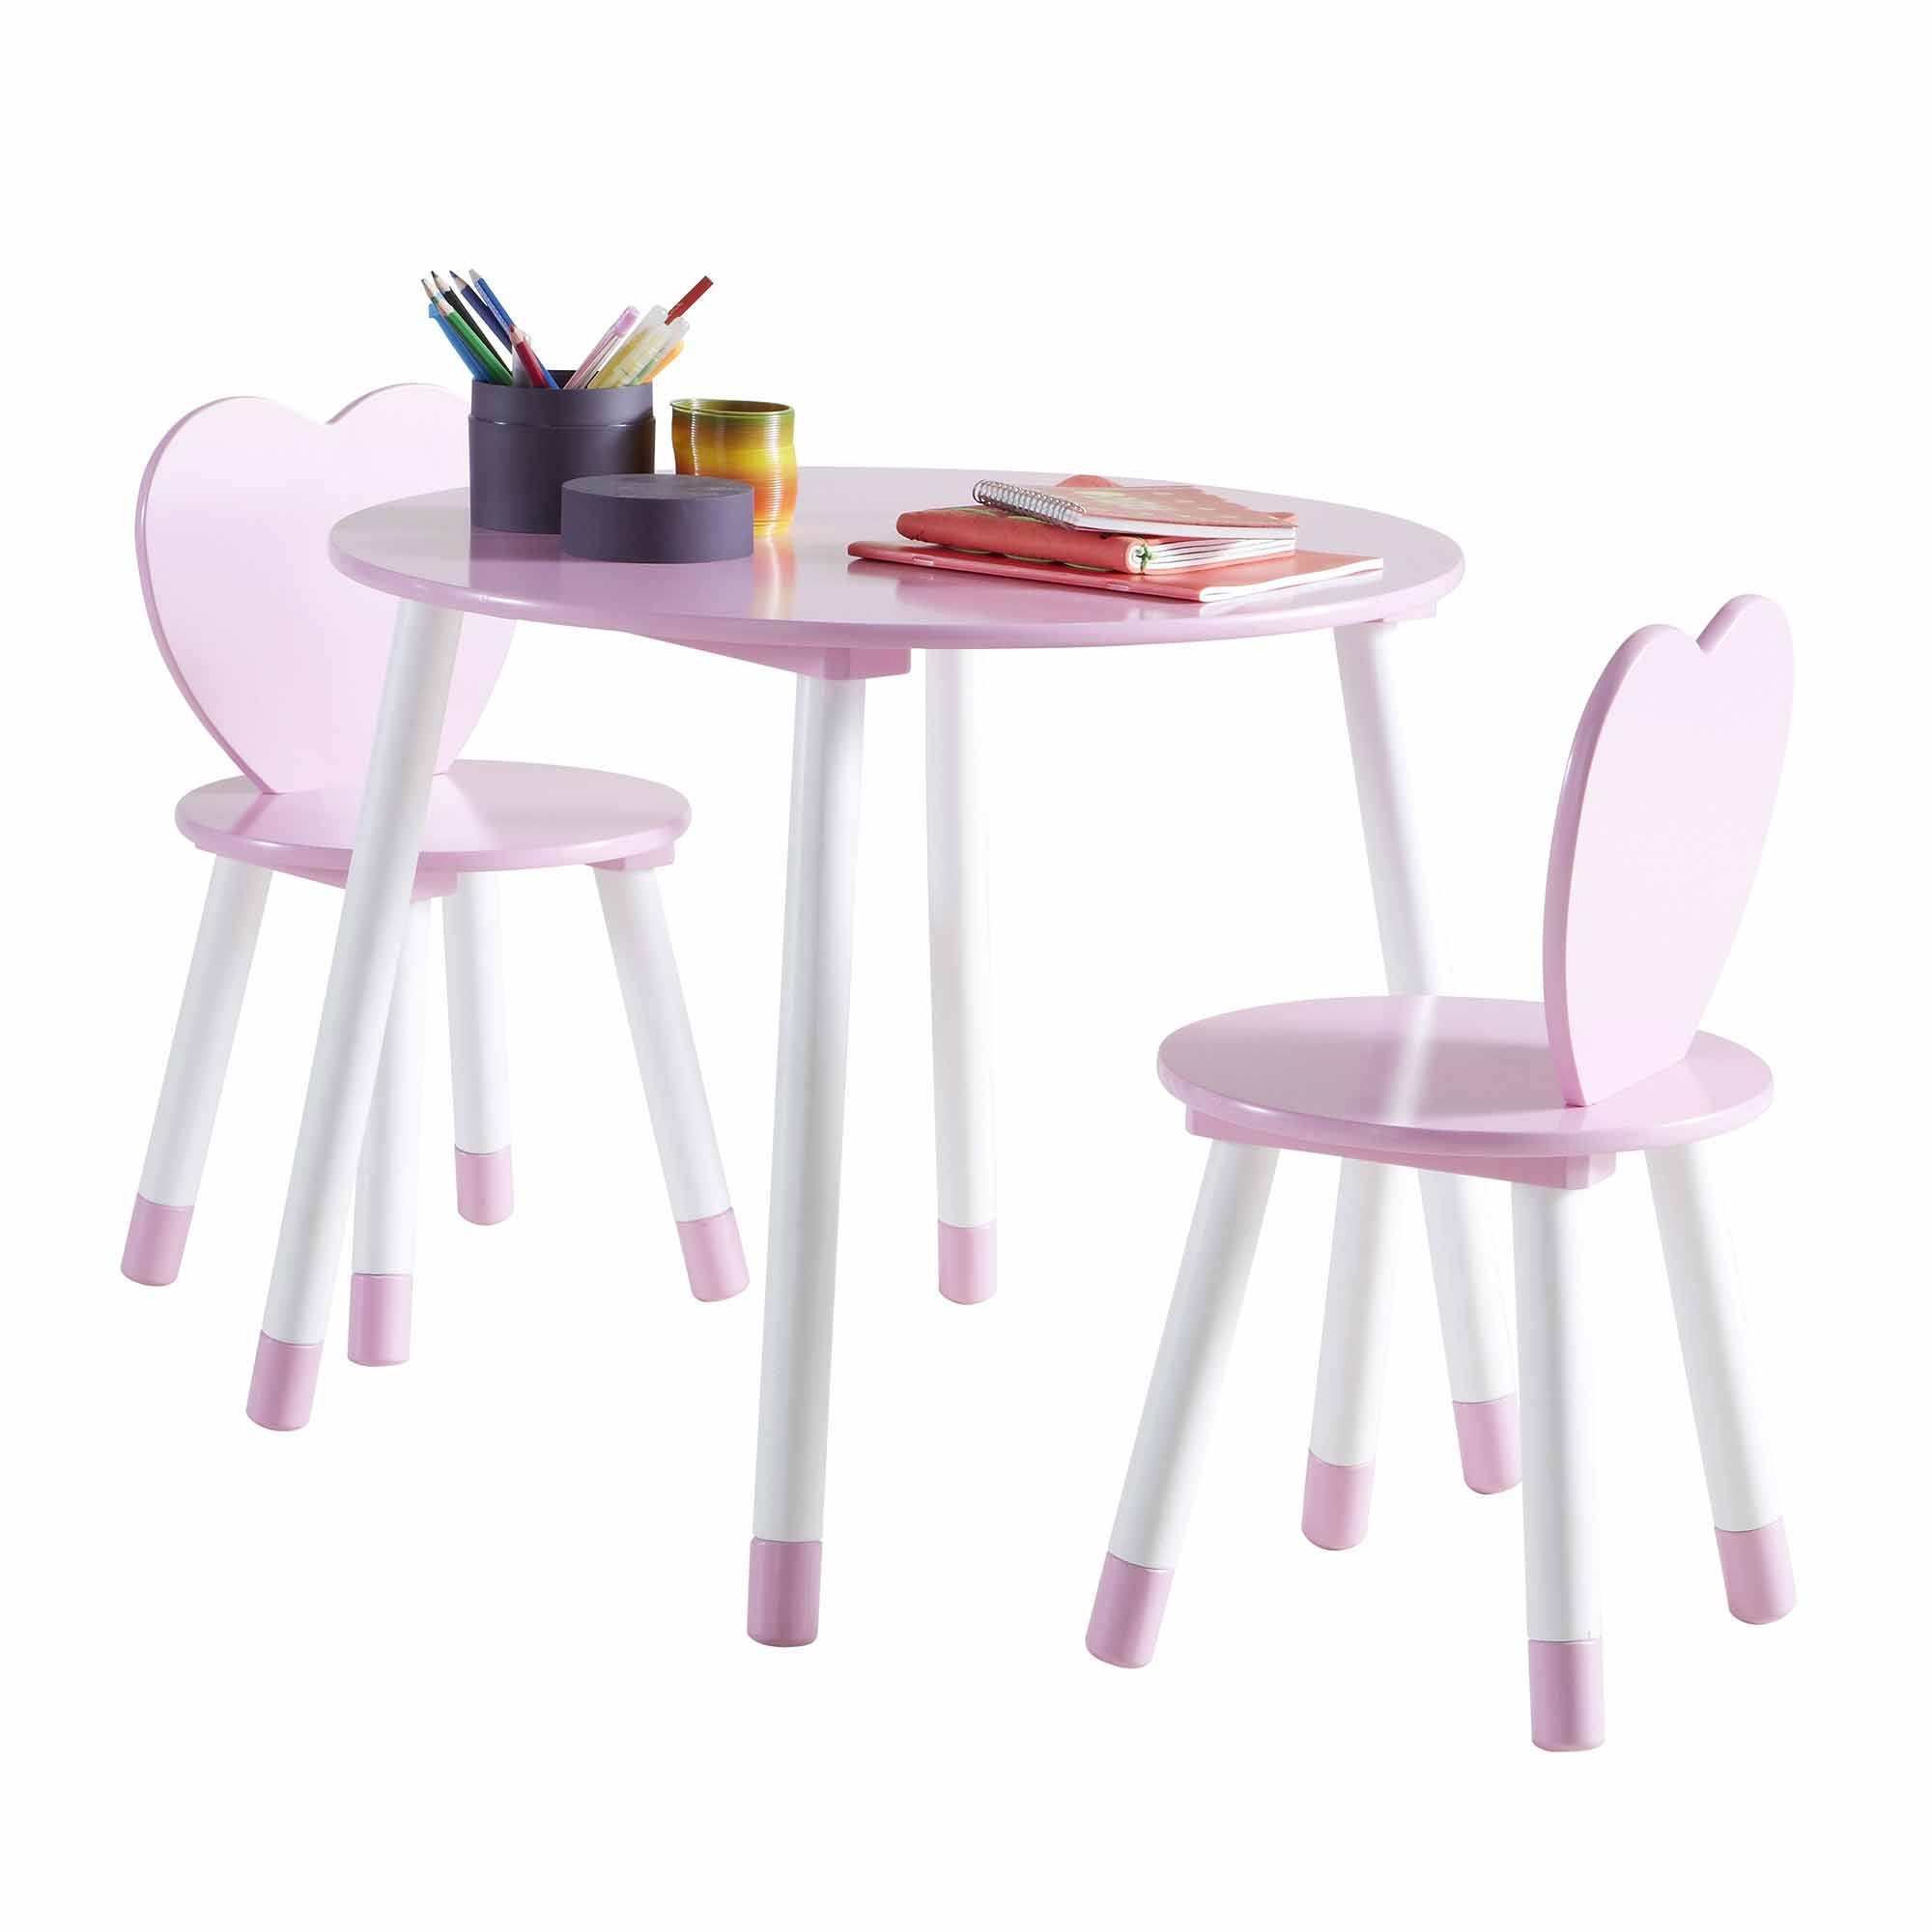 les tendances table et 2 chaises en bois blanc et rose princess. Black Bedroom Furniture Sets. Home Design Ideas